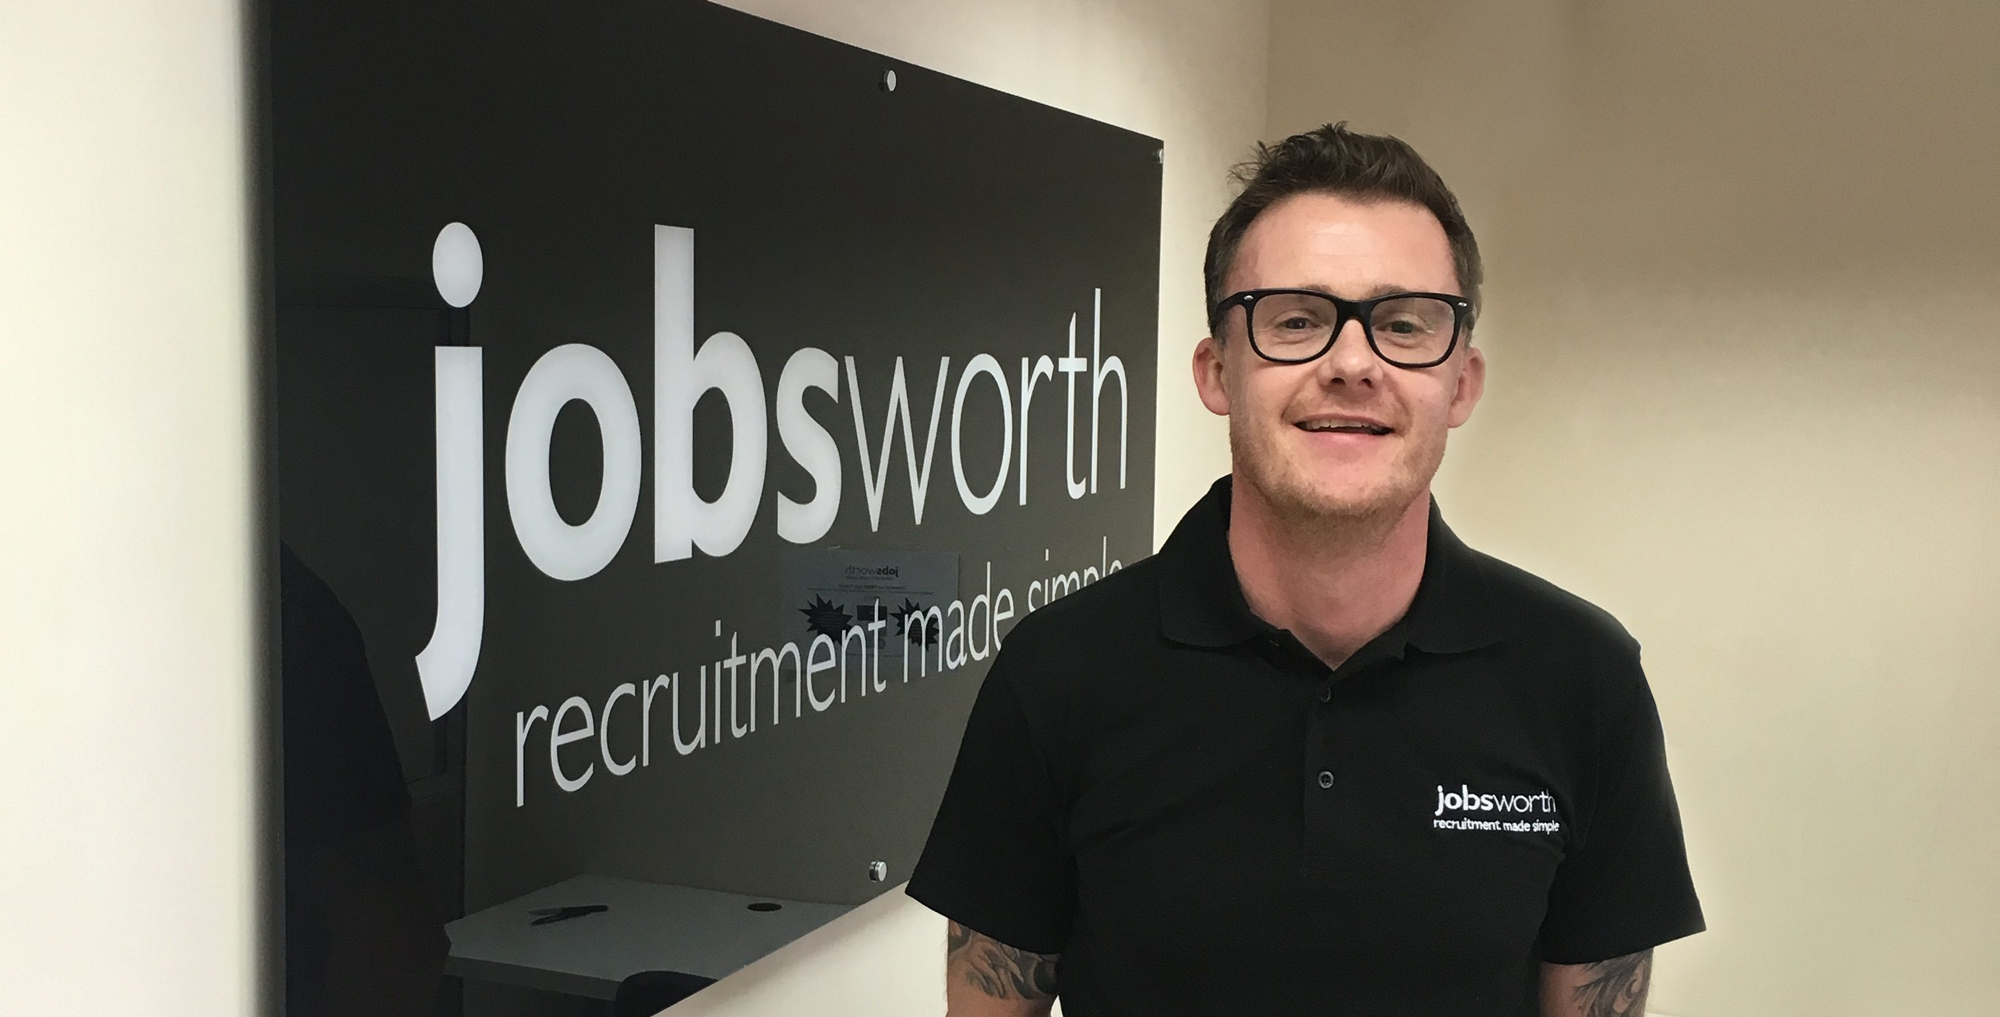 Employee Jay stood infront of Jobsworth sign